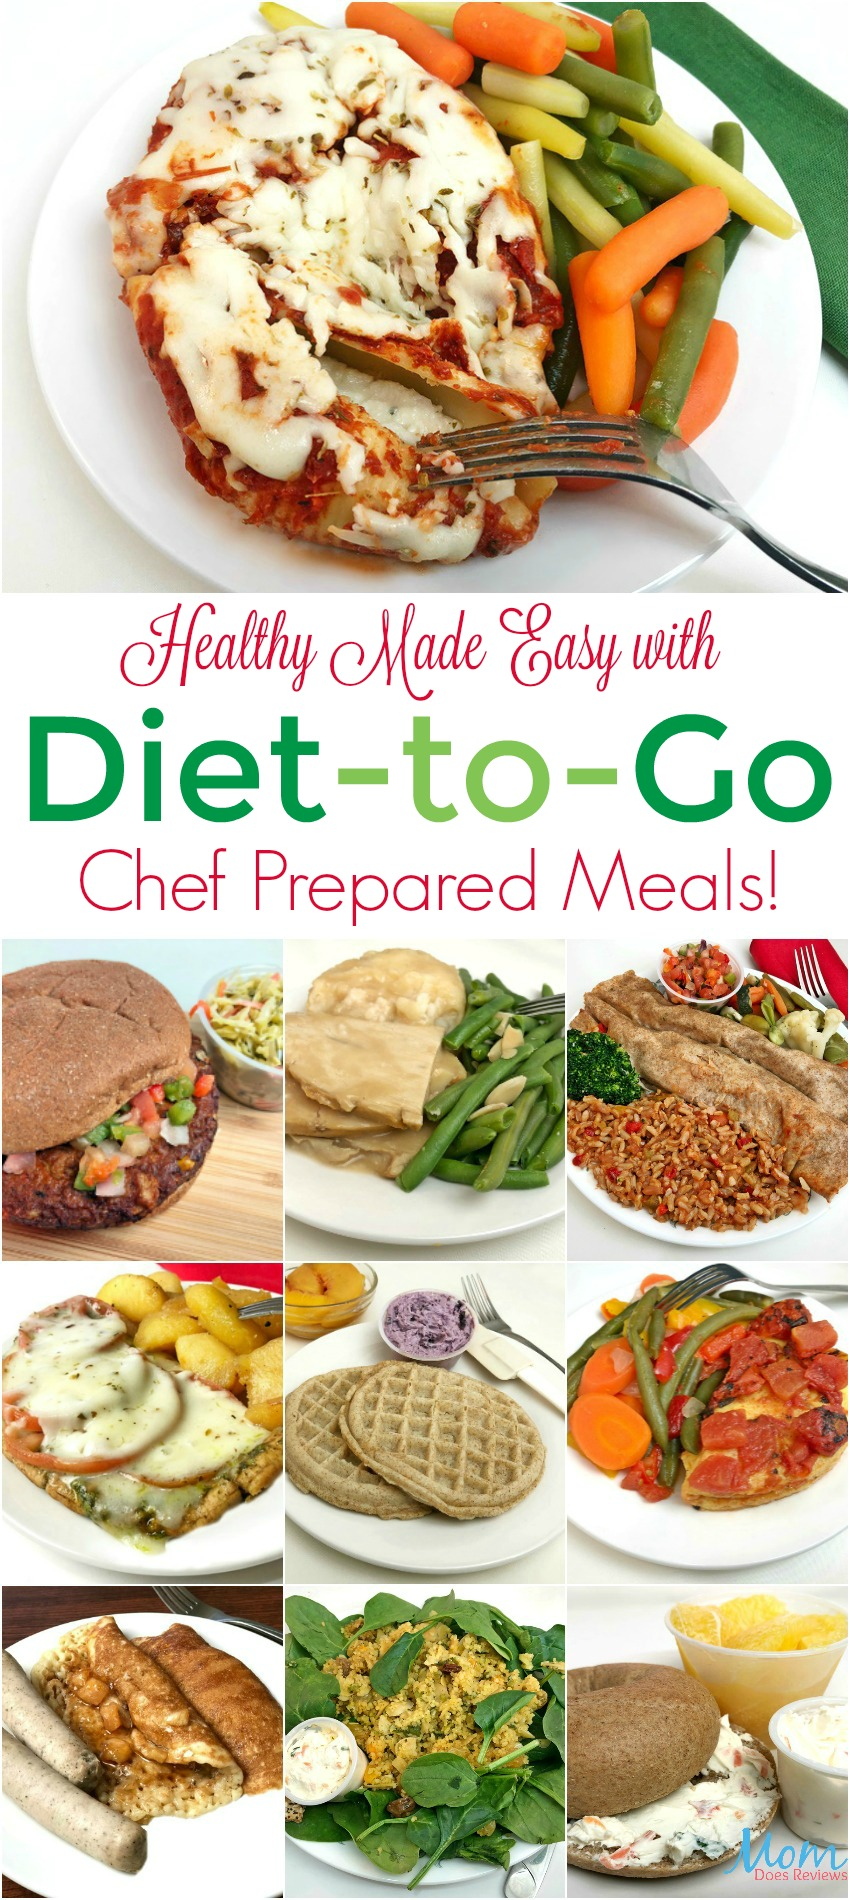 Healthy Made Easy with Diet-to-Go Chef Prepared Meals!